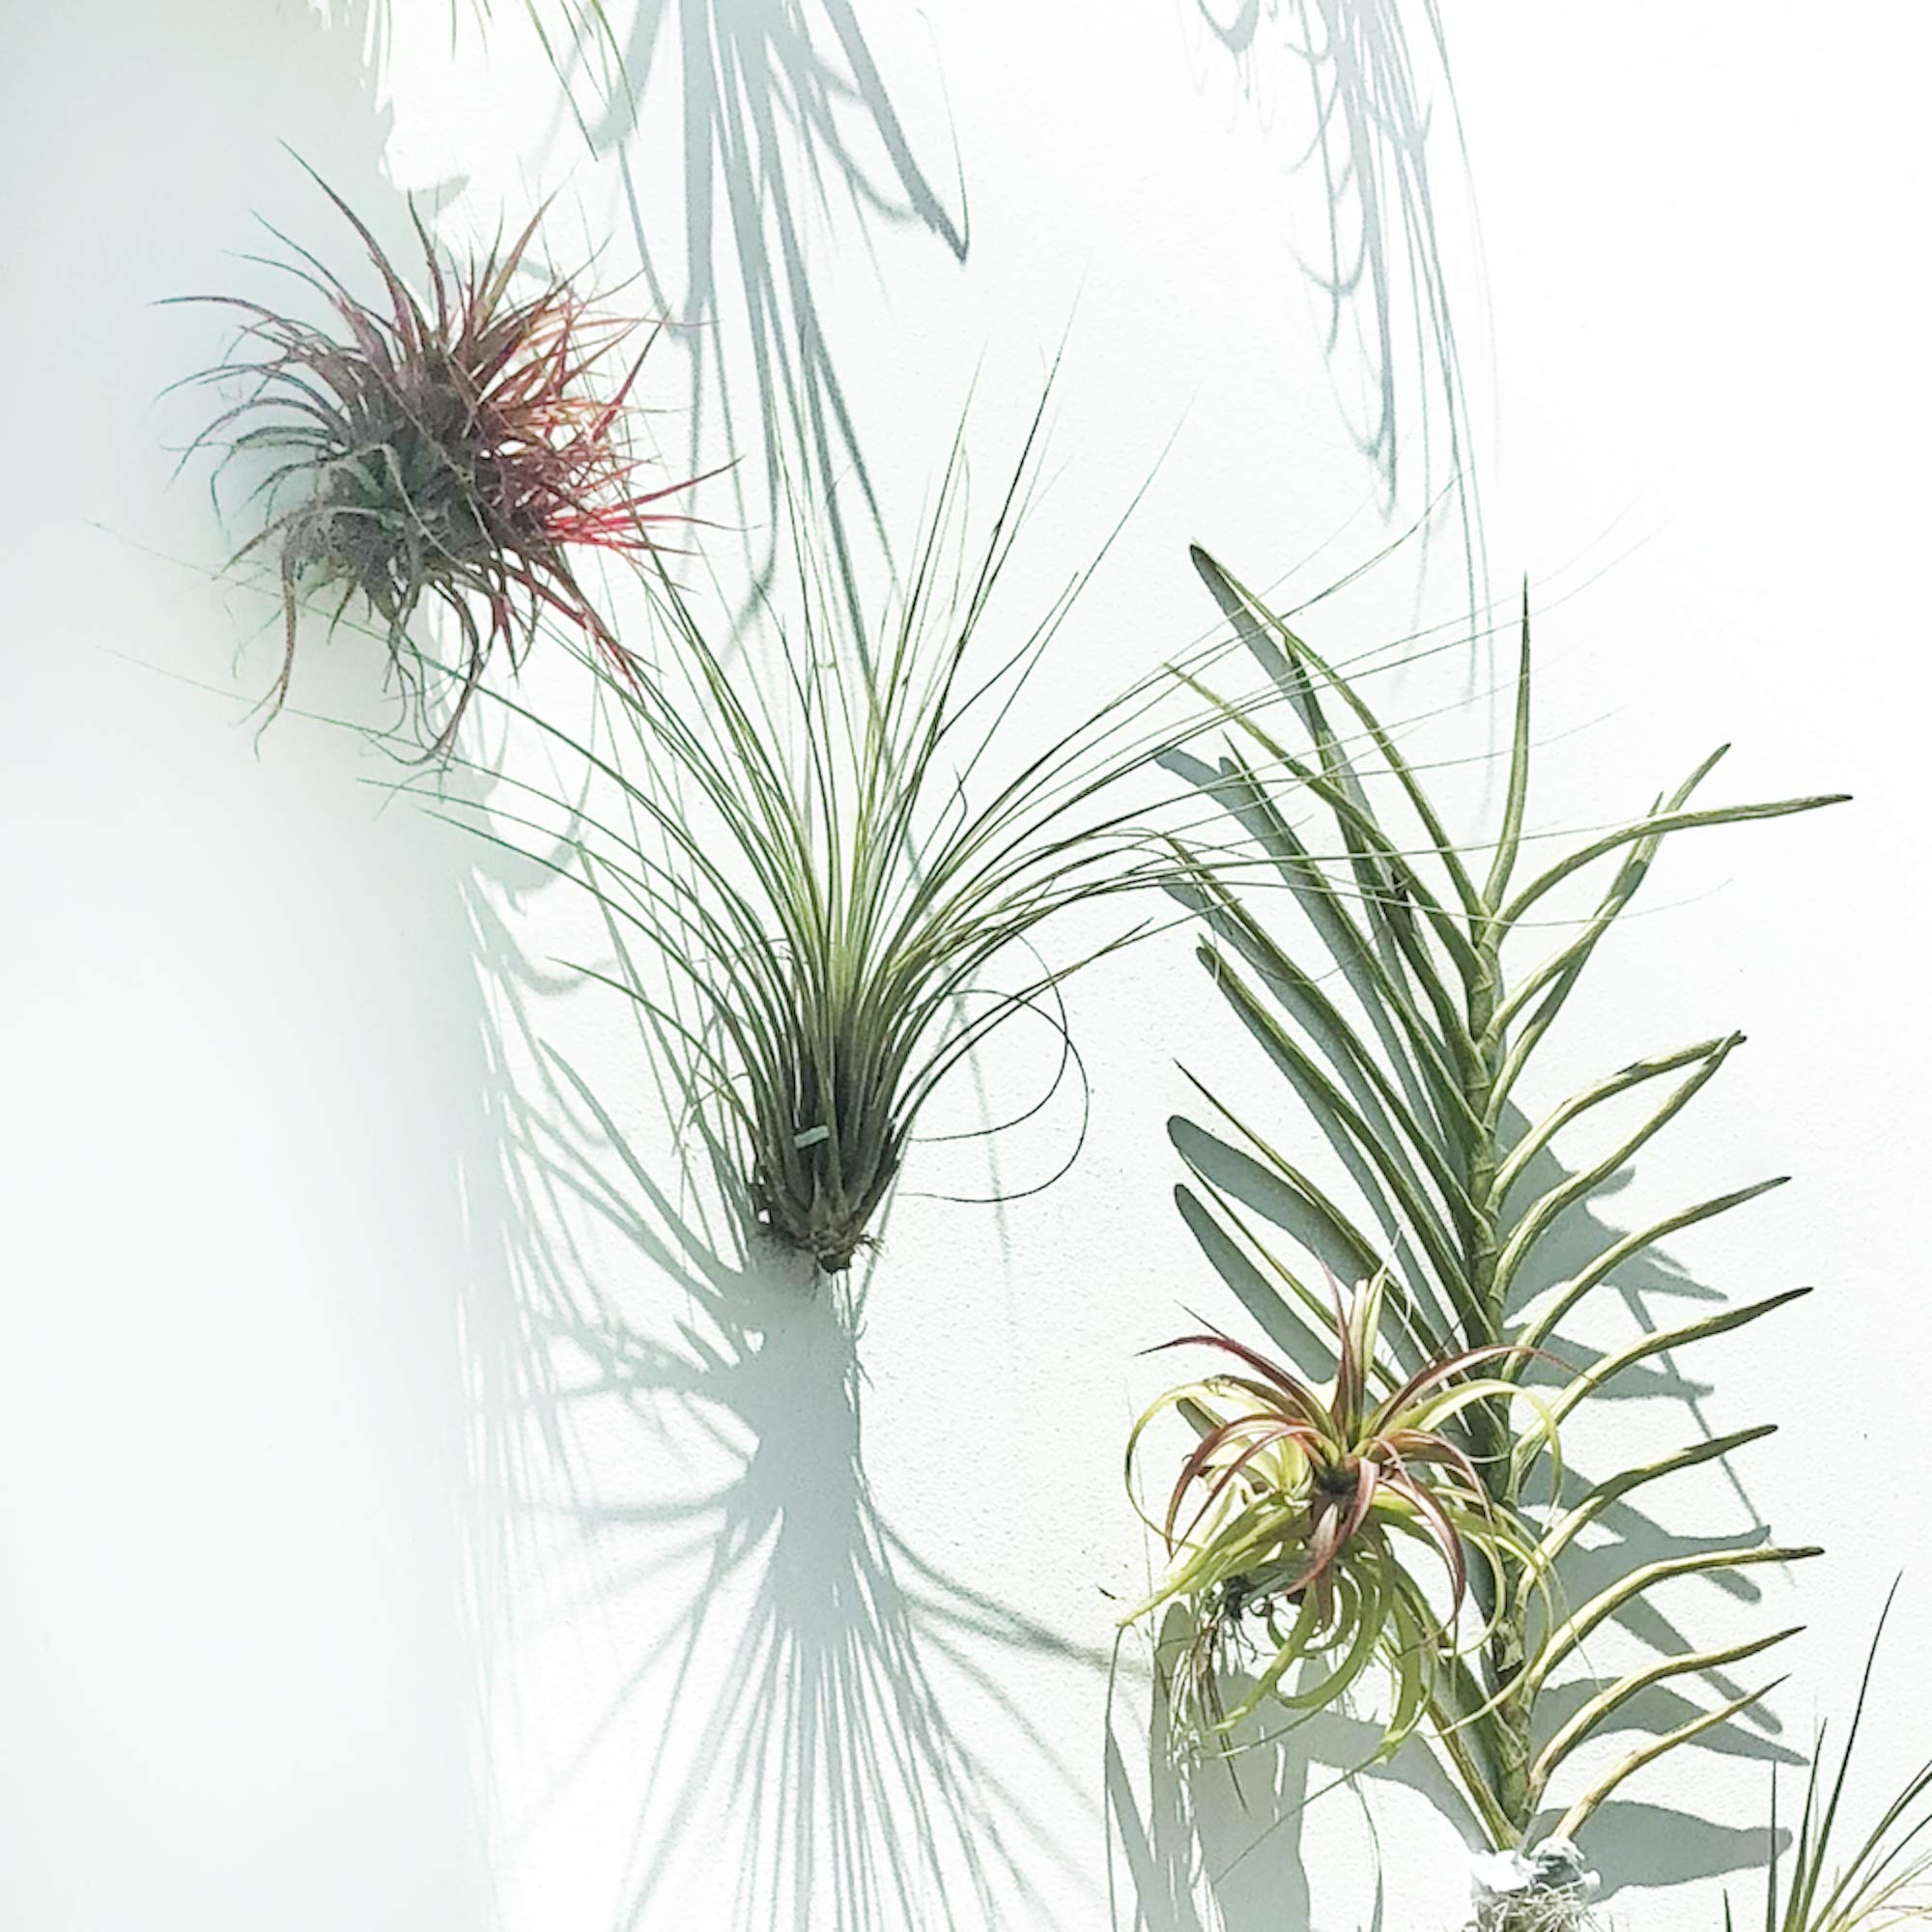 ArtAK Wall Planter Air Plant Holder Wall Hanging AIR KNOTS | 5 Wall Mount Planters for Large Air Plant & Vanda Display | Vertical Garden Modern Hanging Planter | Hanging Air Plants and Holders Grey by ArtAK (Image #7)